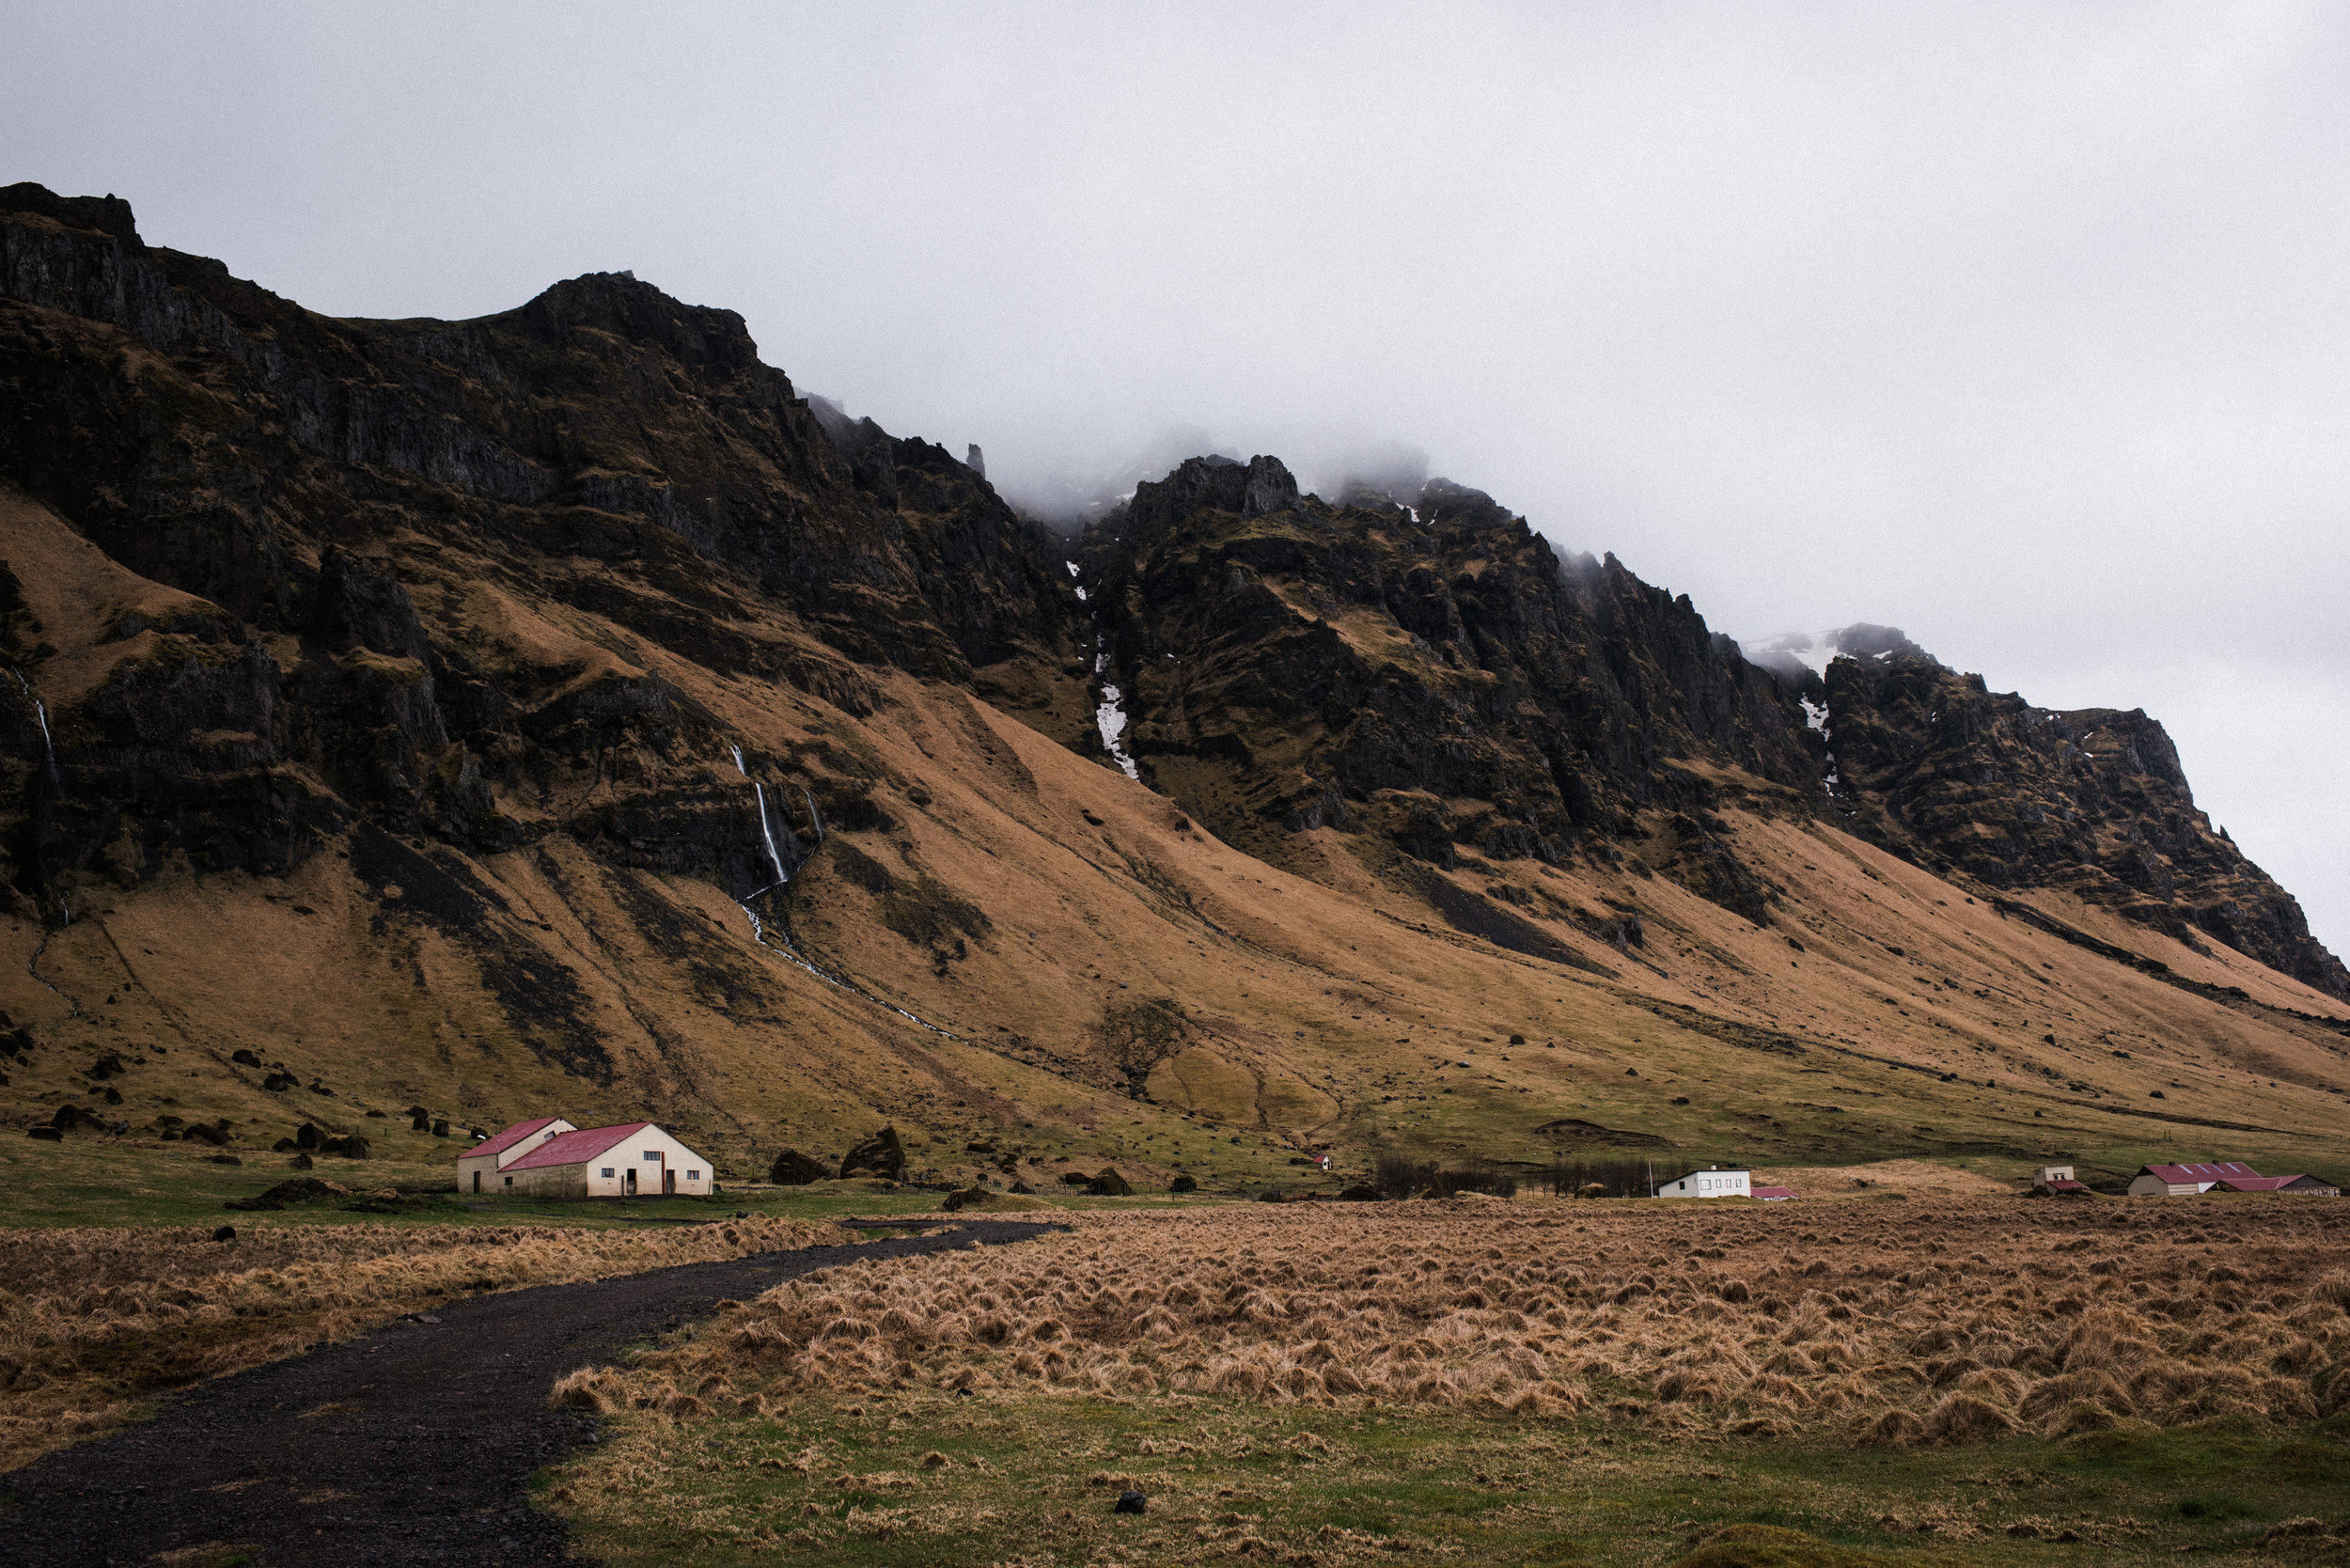 ICELAND_WOMAN_PHOTOGRAPHER_TARASHUPE_OUTDOOR_PHOTOGRAPHY_014.jpg